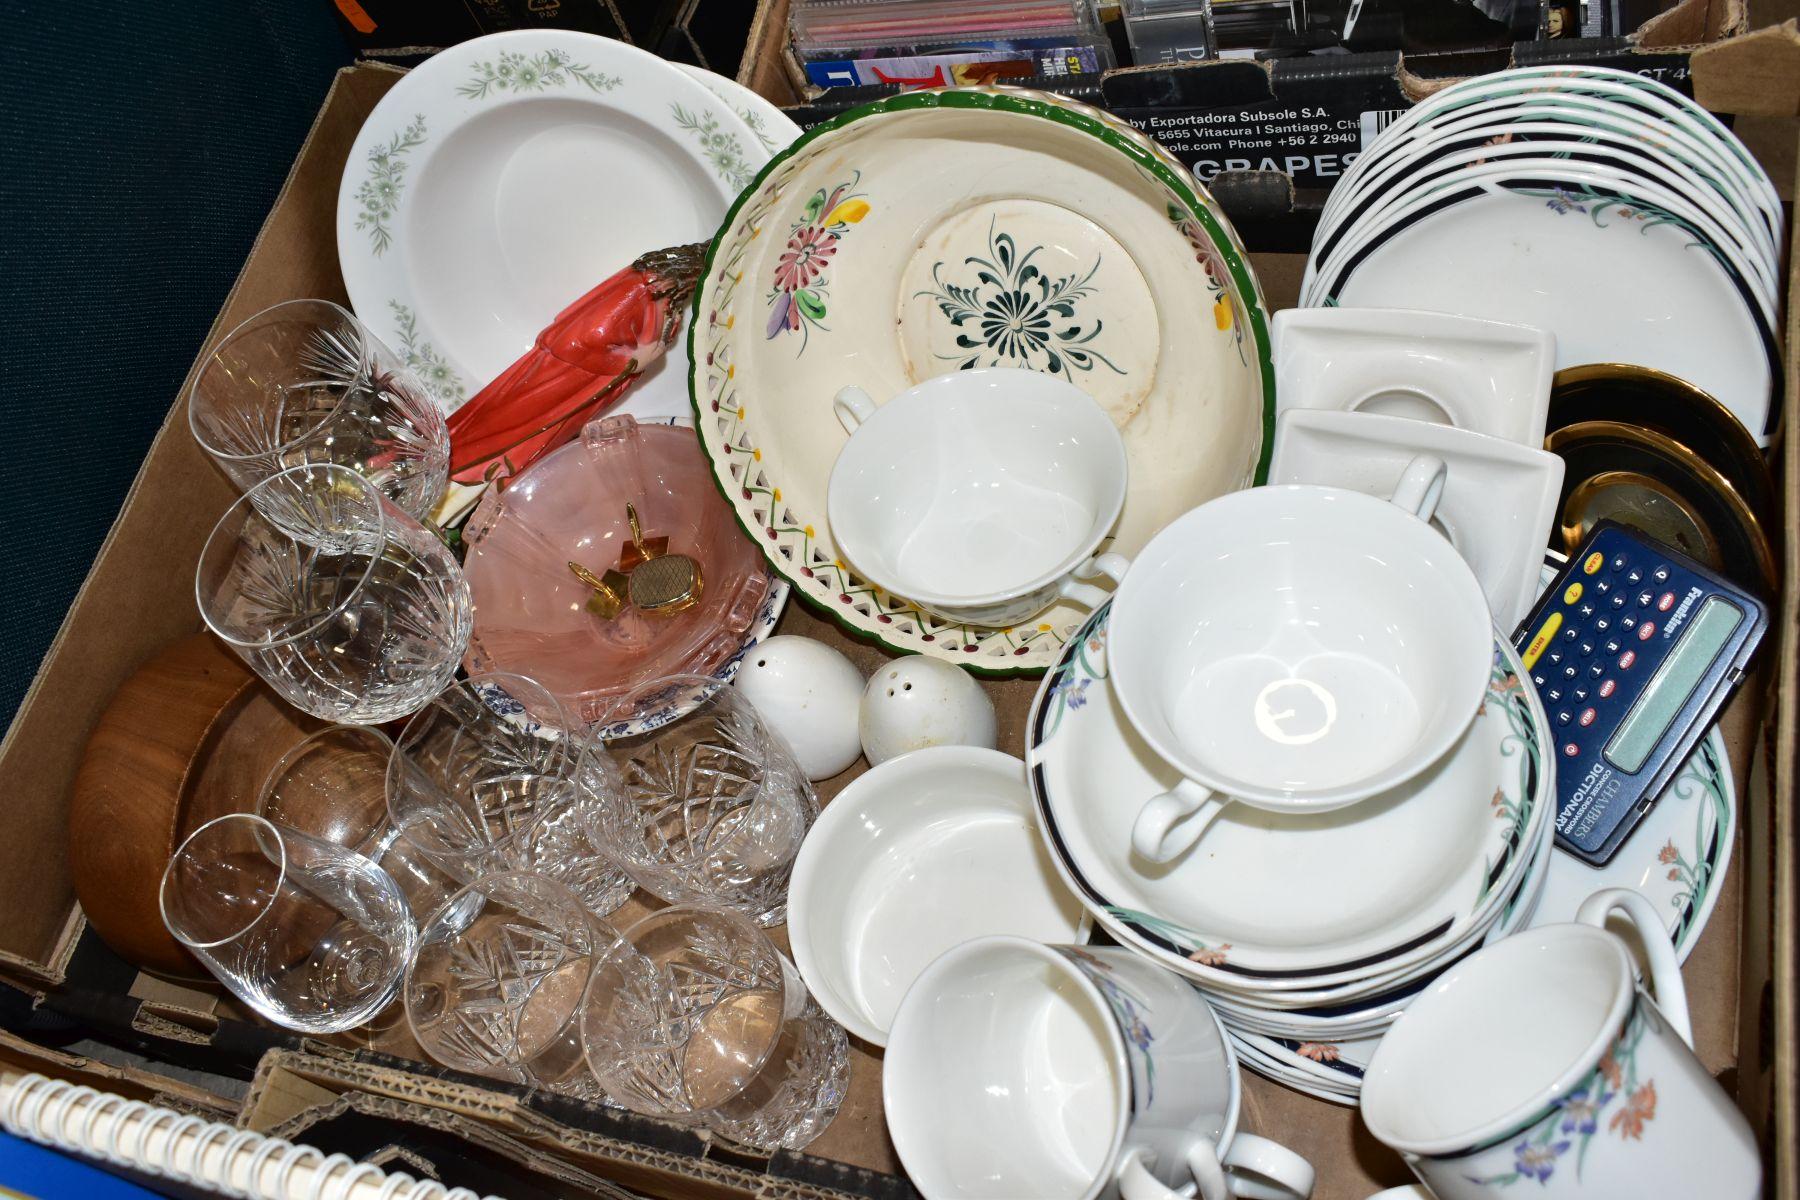 THREE BOXES AND LOOSE CERAMICS, GLASS, BOOKS, CD'S, A SUITCASE, ETC, including Royal Doulton Juno - Image 5 of 10